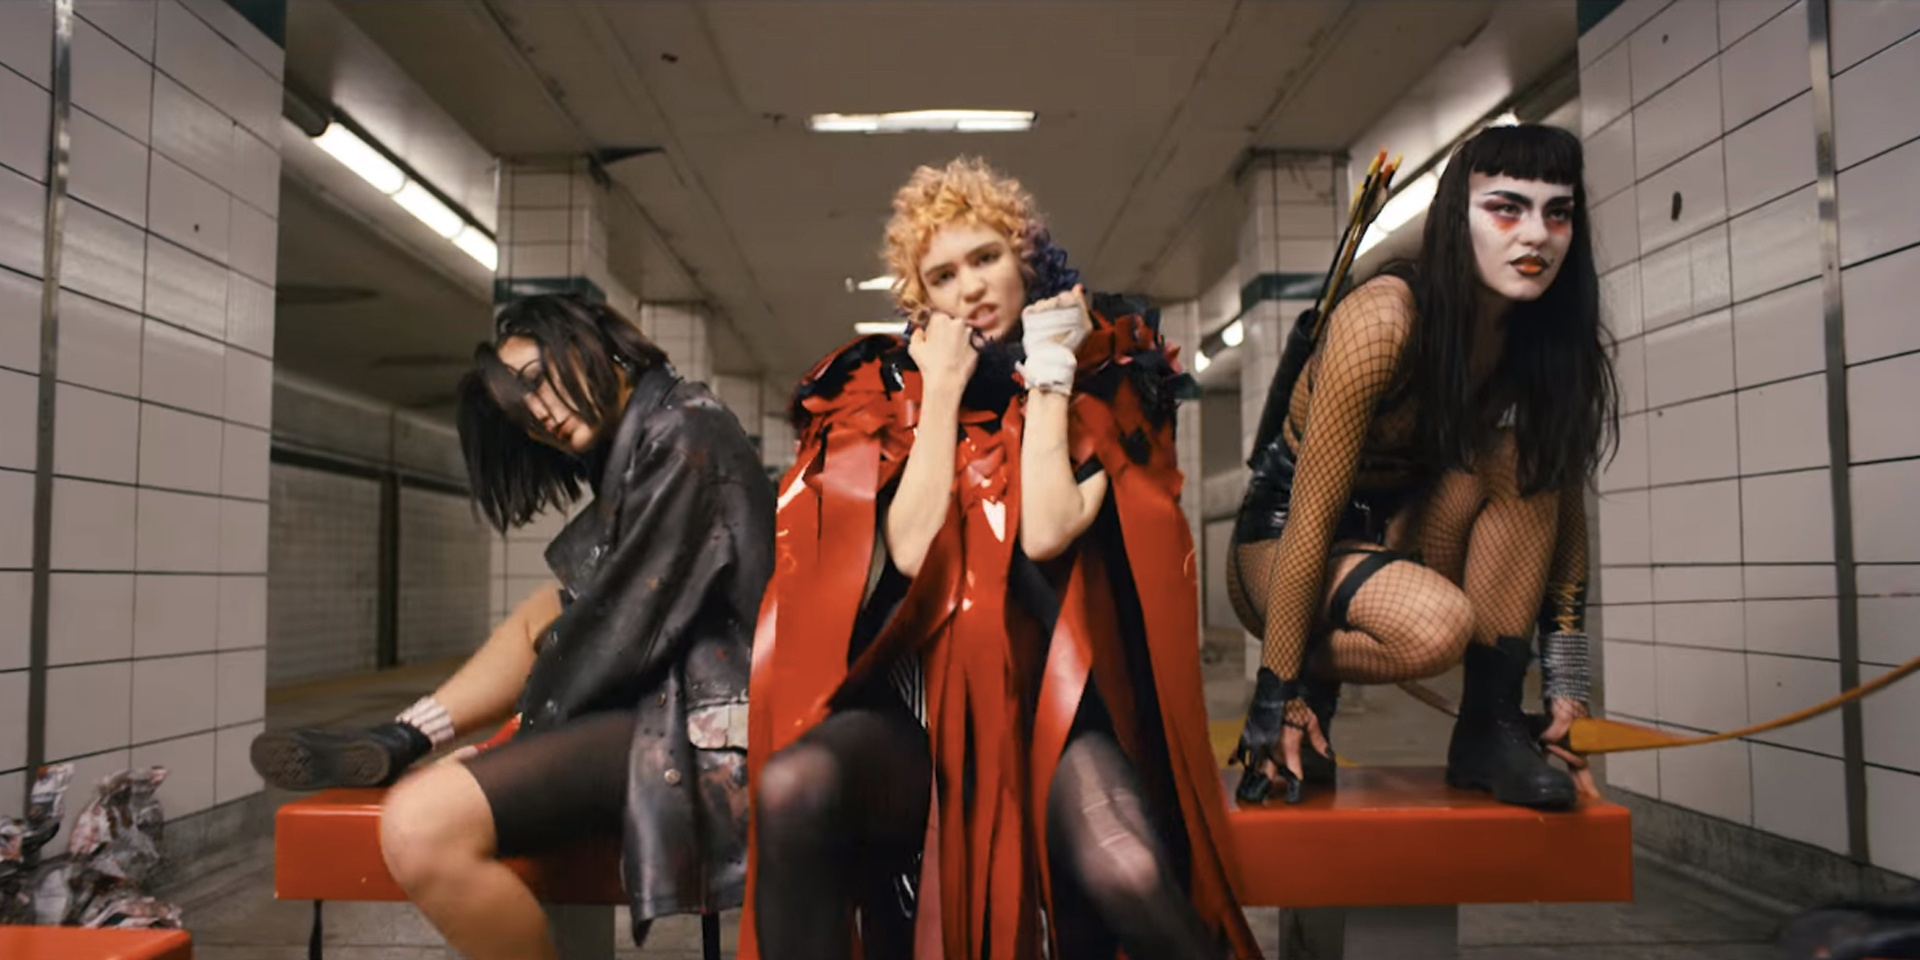 WATCH: Grimes' new hyper-surreal video for 'Kill V. Maim'